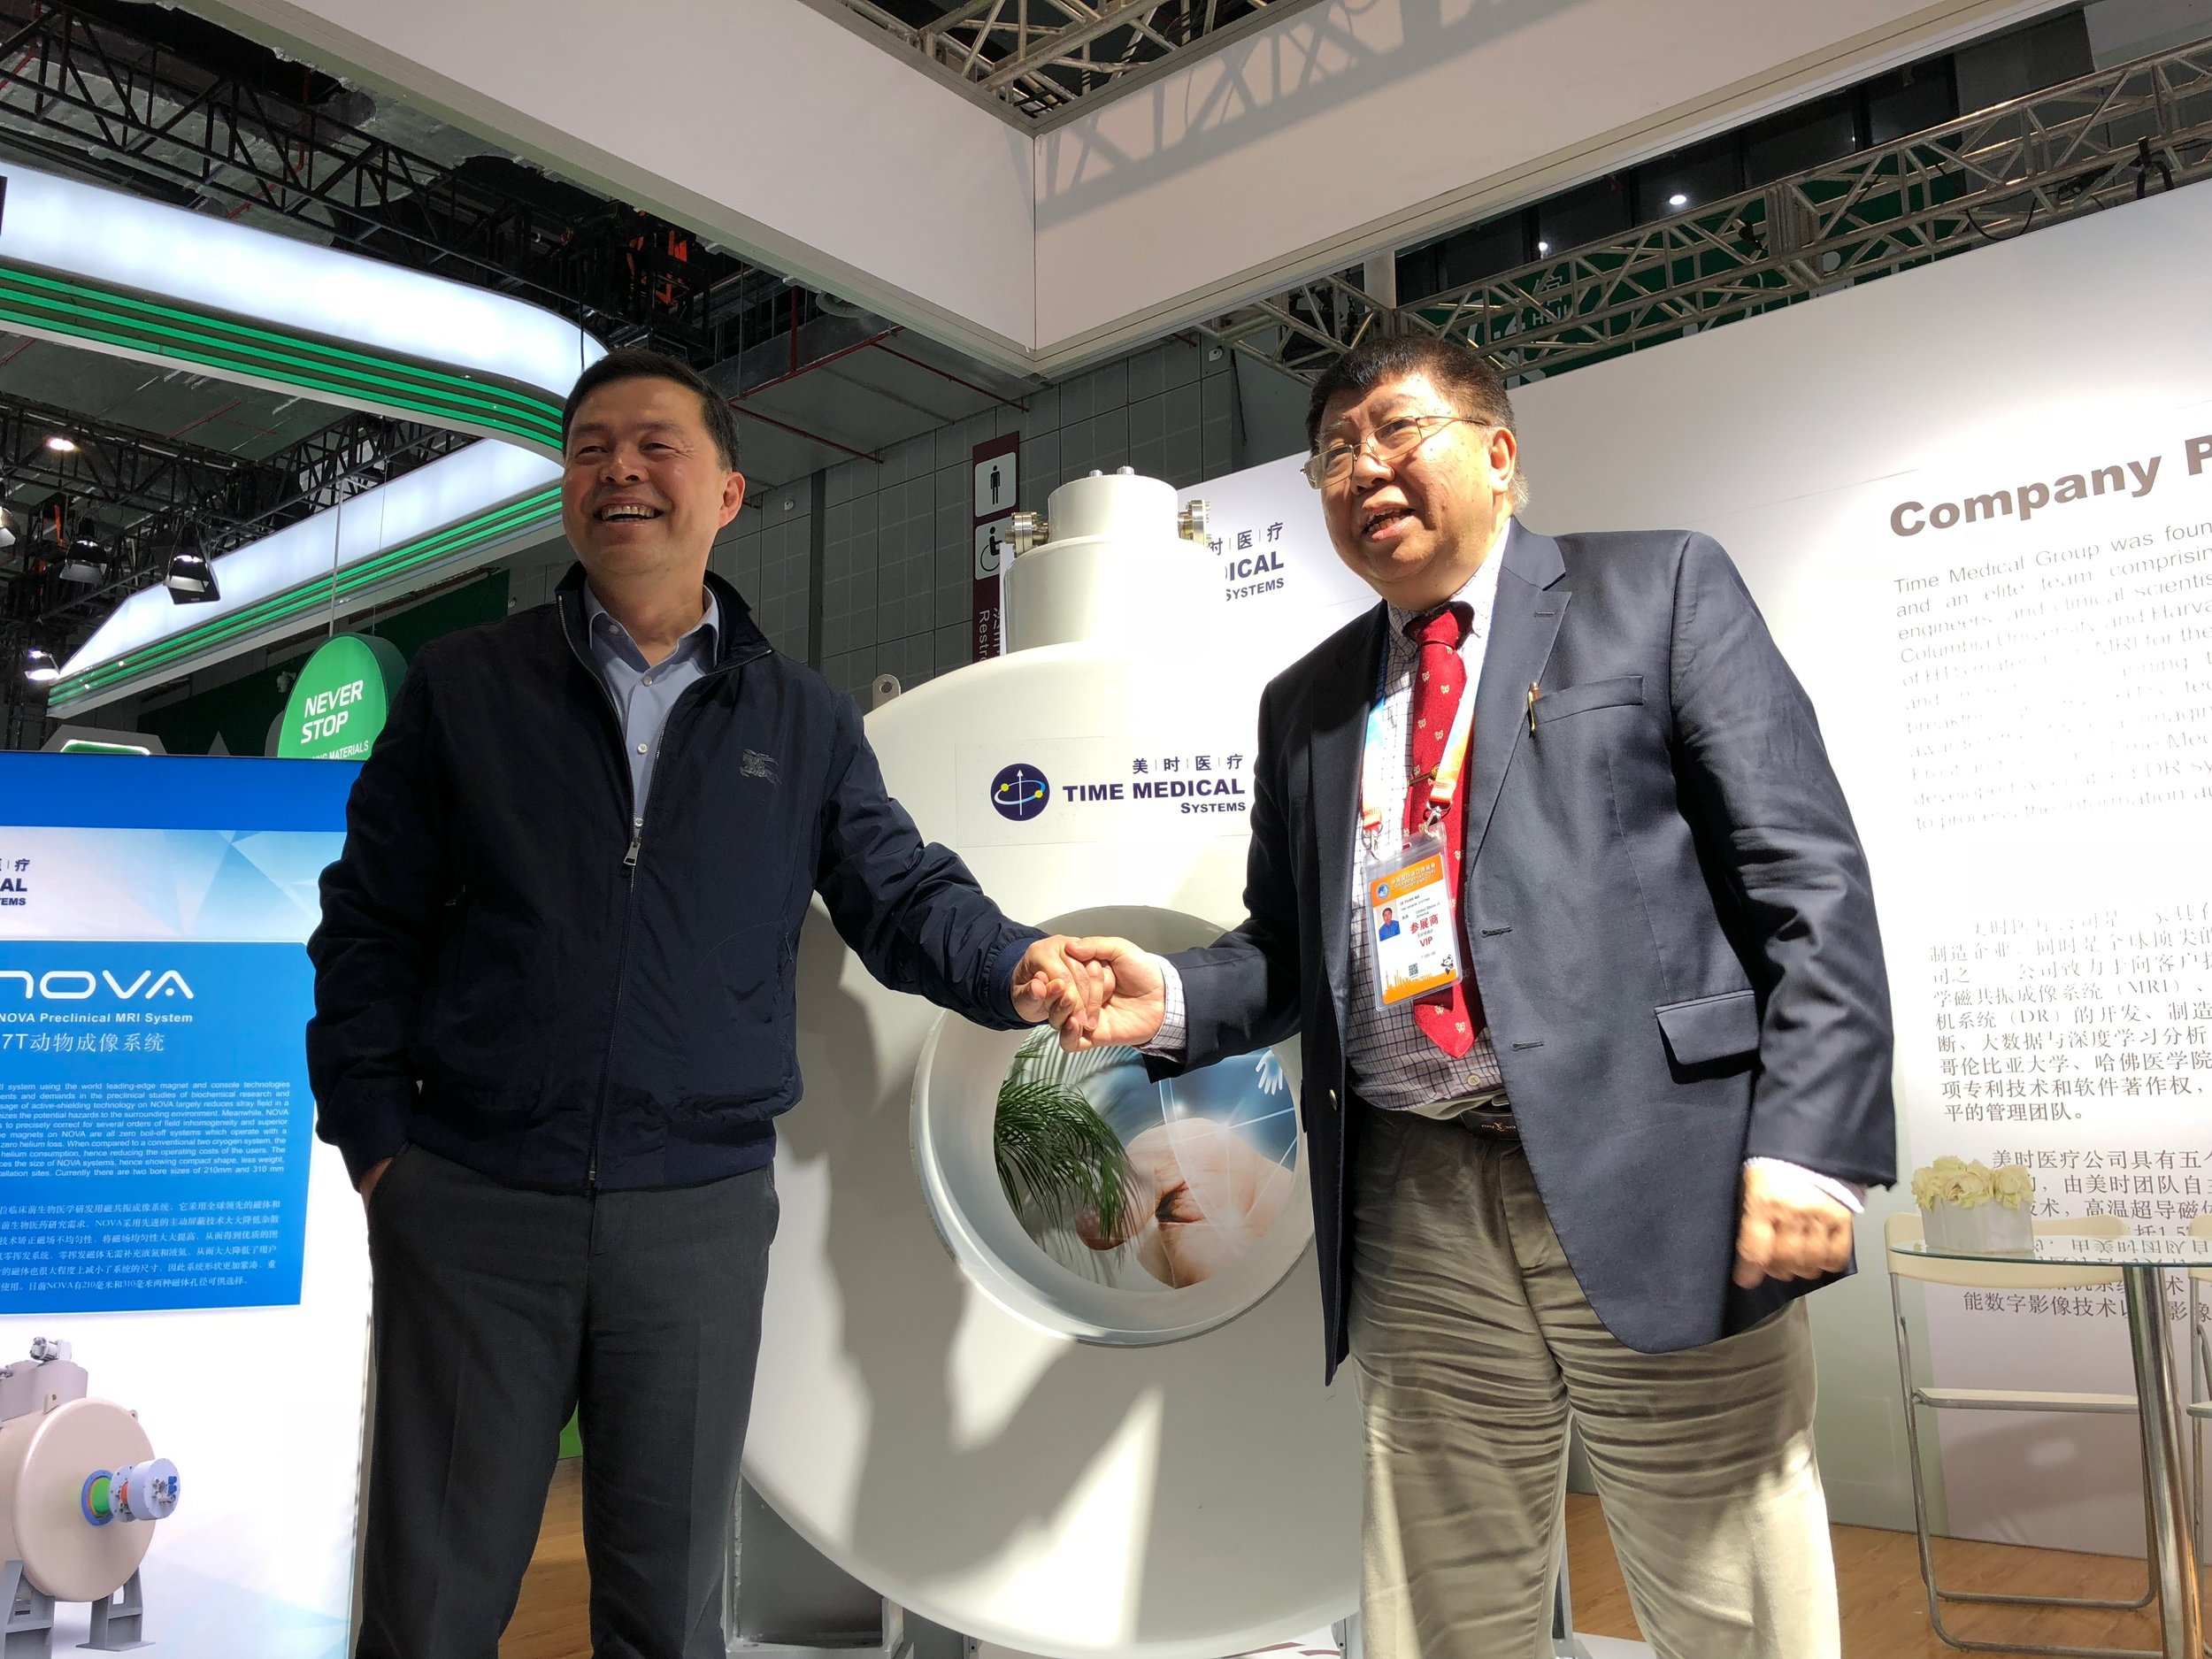 Professor Ma Qiyuan and the leader of the Ruijin Hospital took a photo in front of the 7T NOVA.